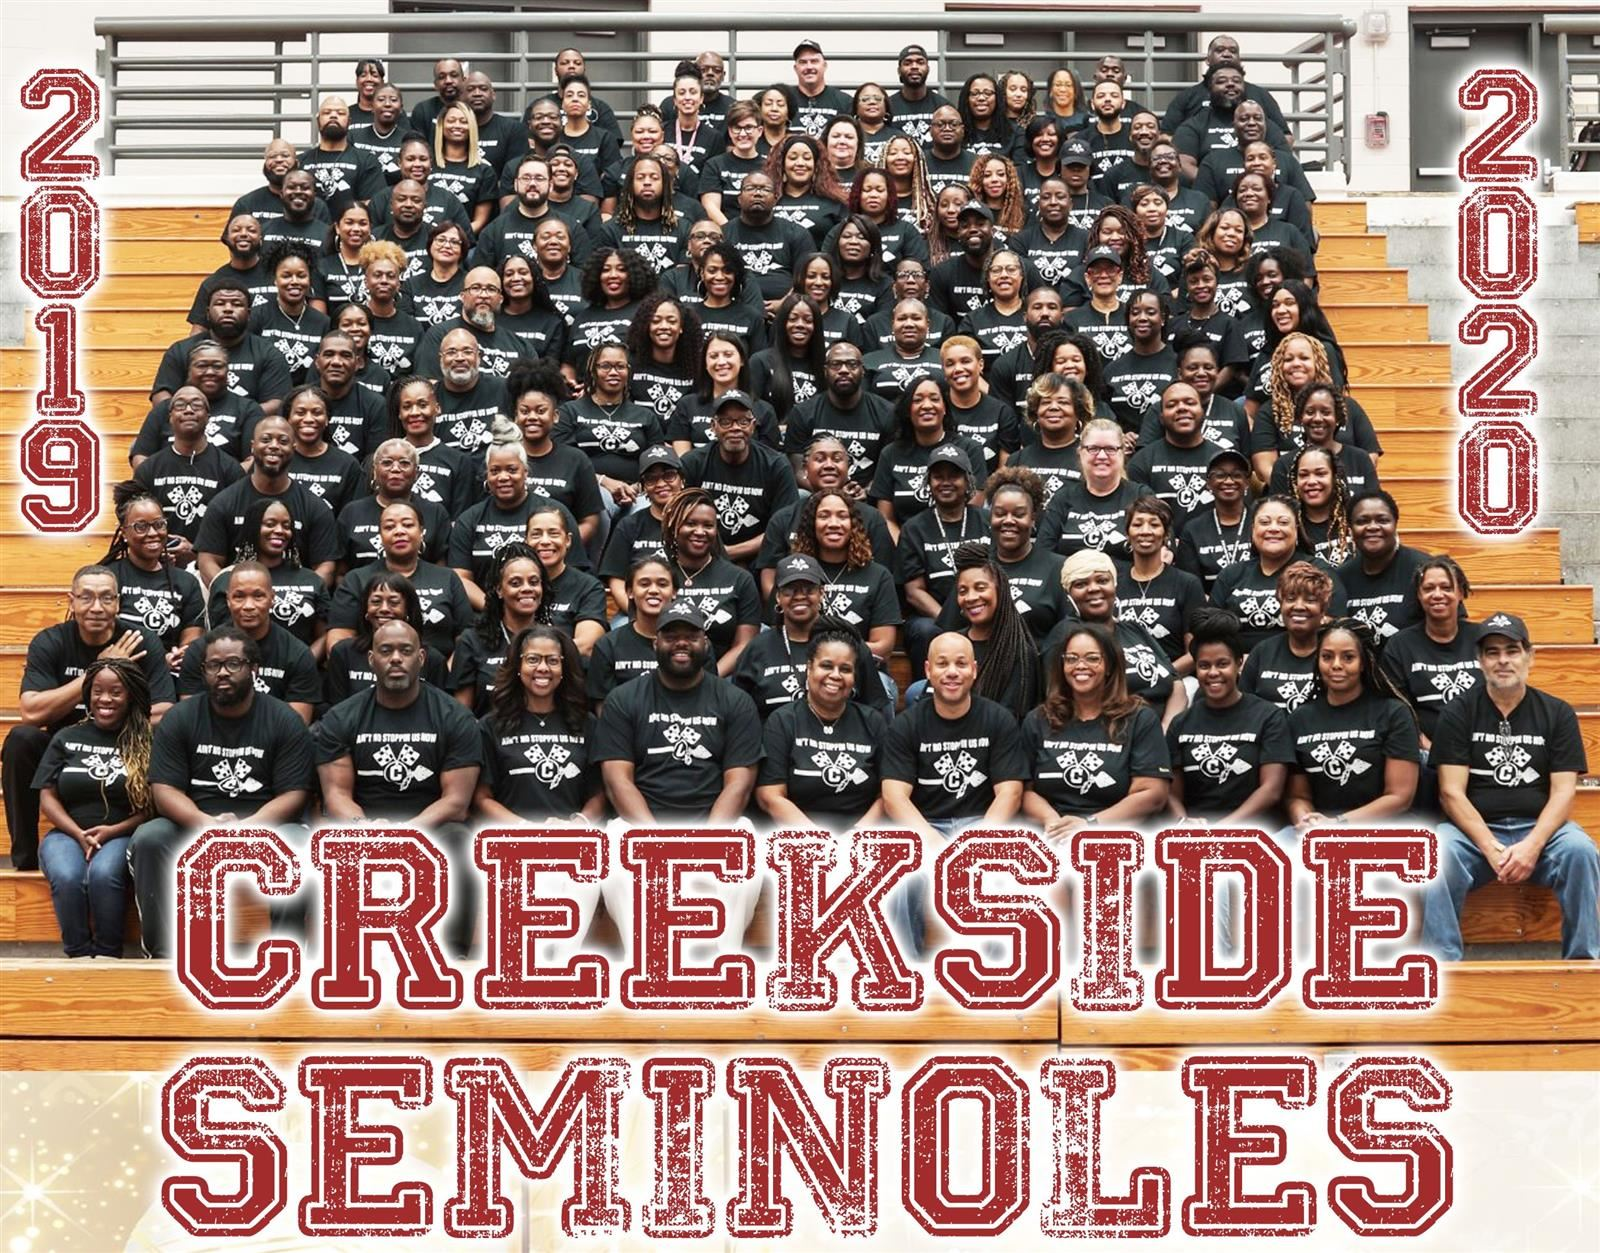 Creekside Staff